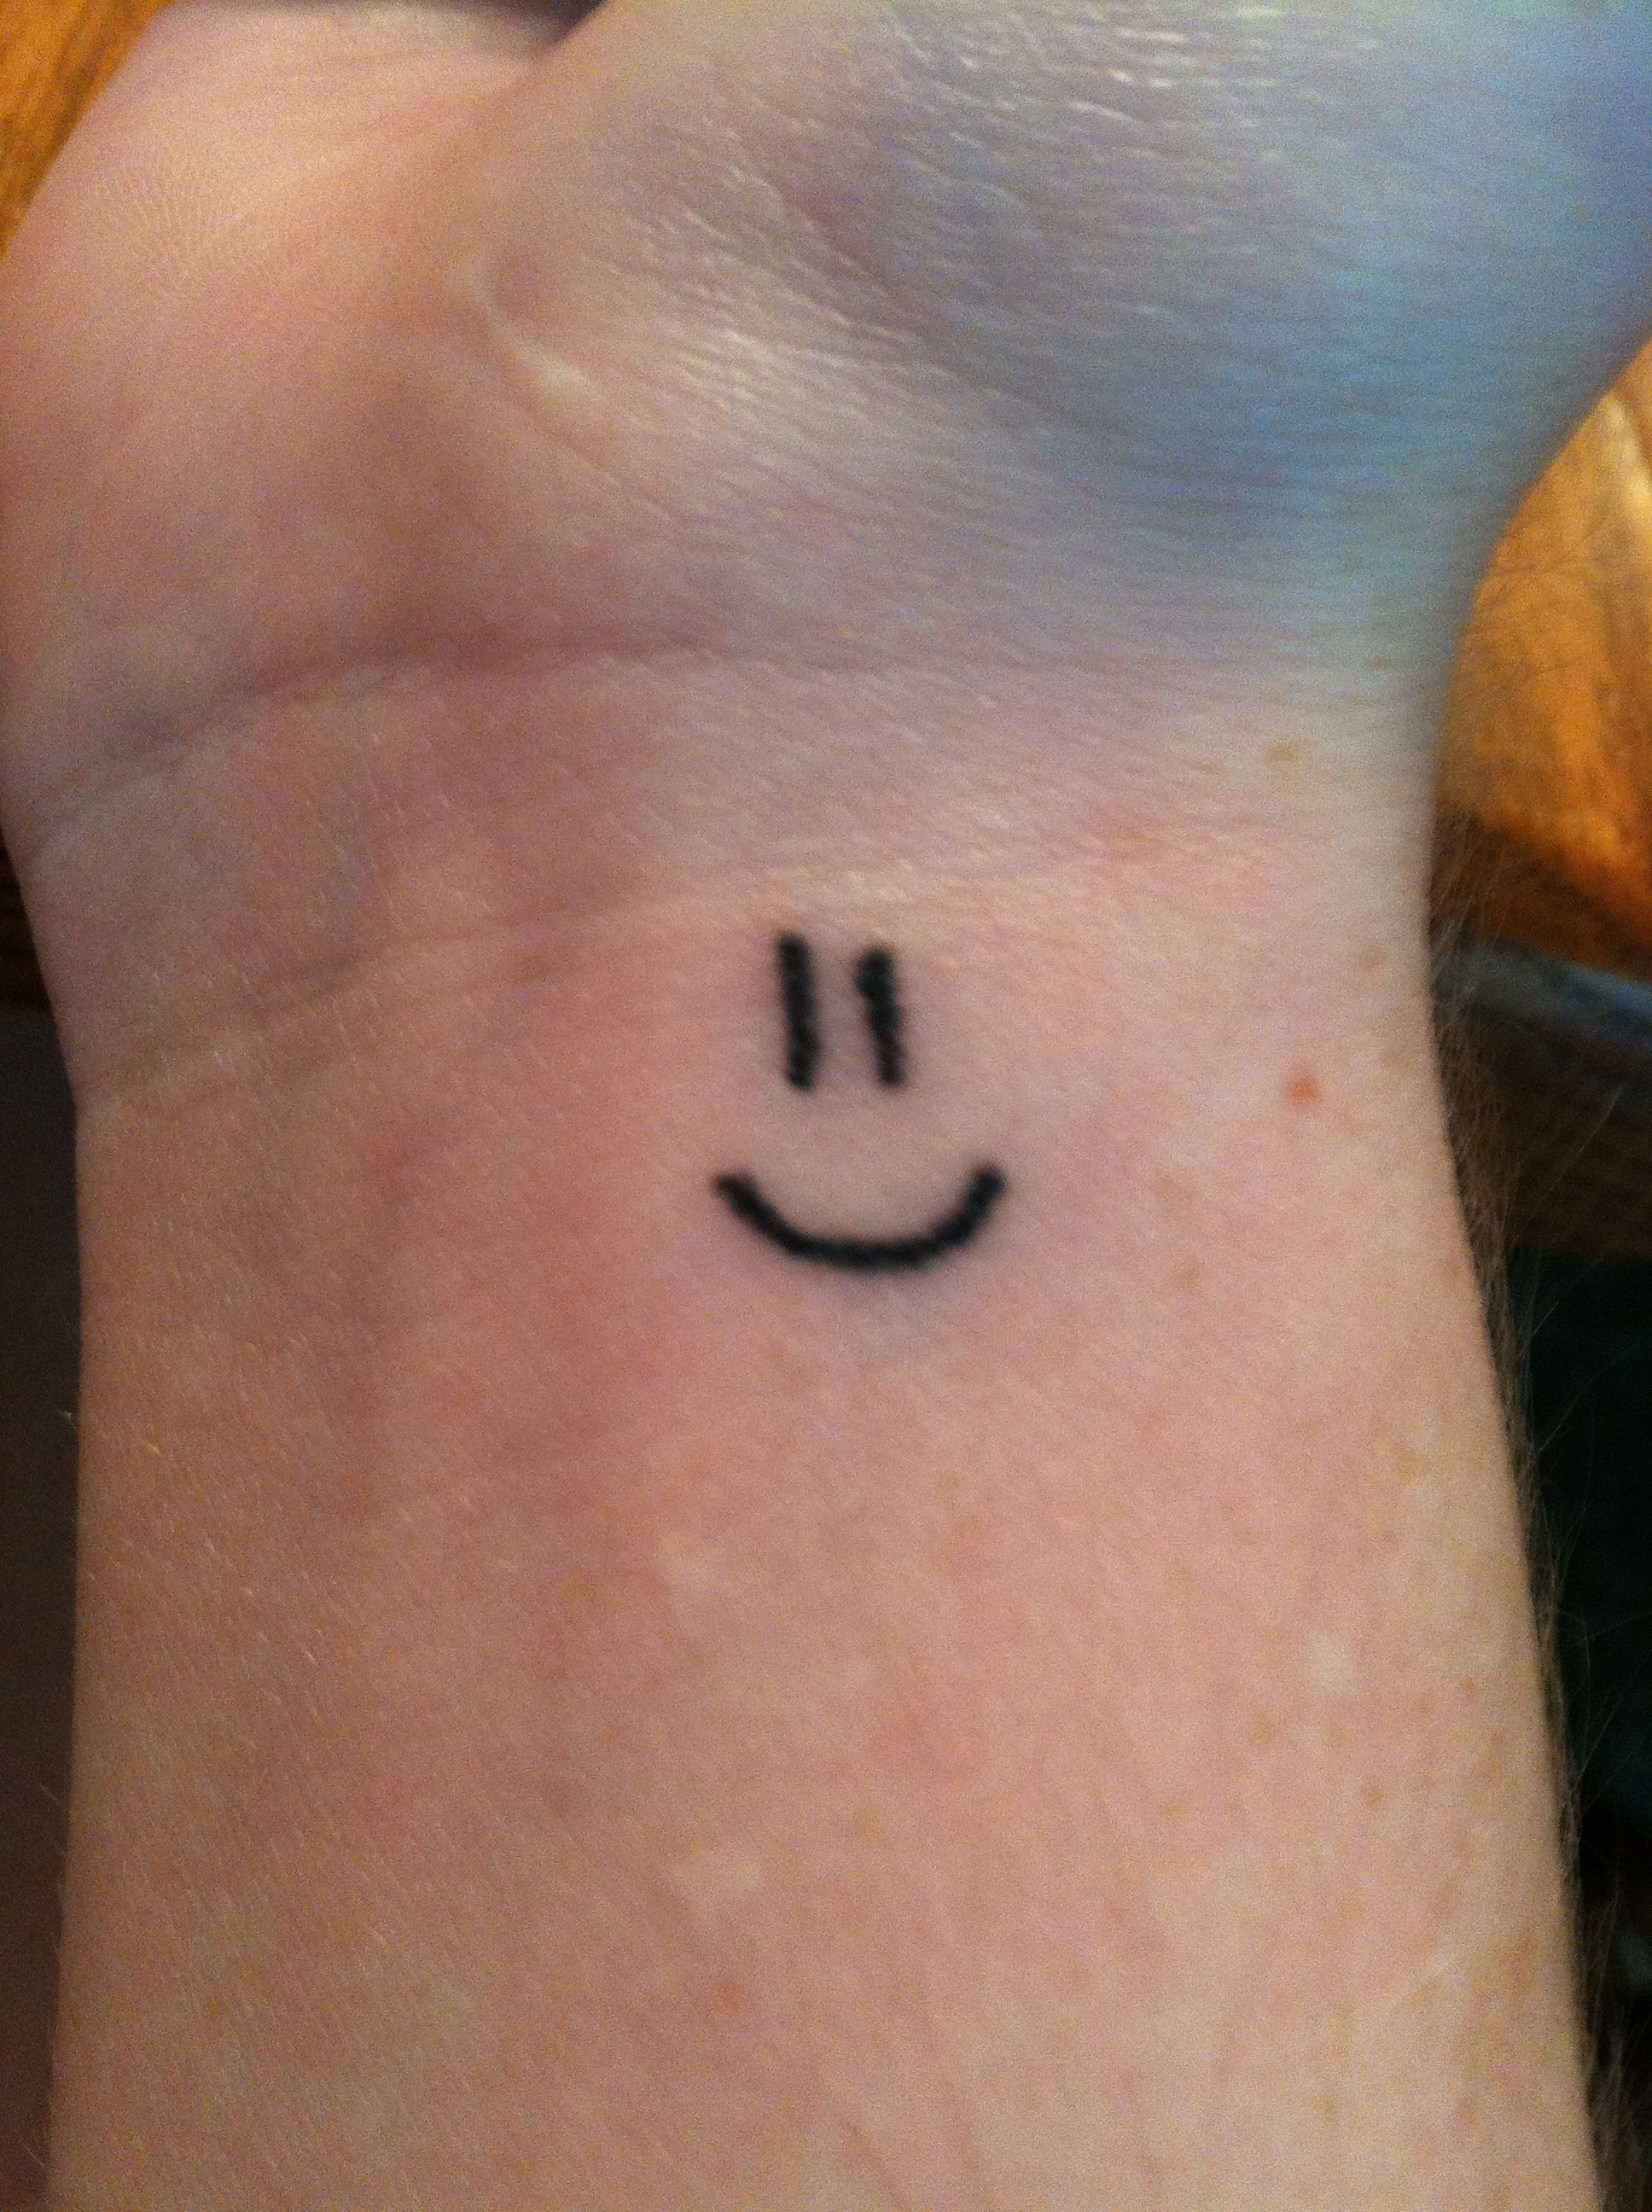 Smiley Face Tattoo Tattoos Pinterest Tattoos Face Tattoos And